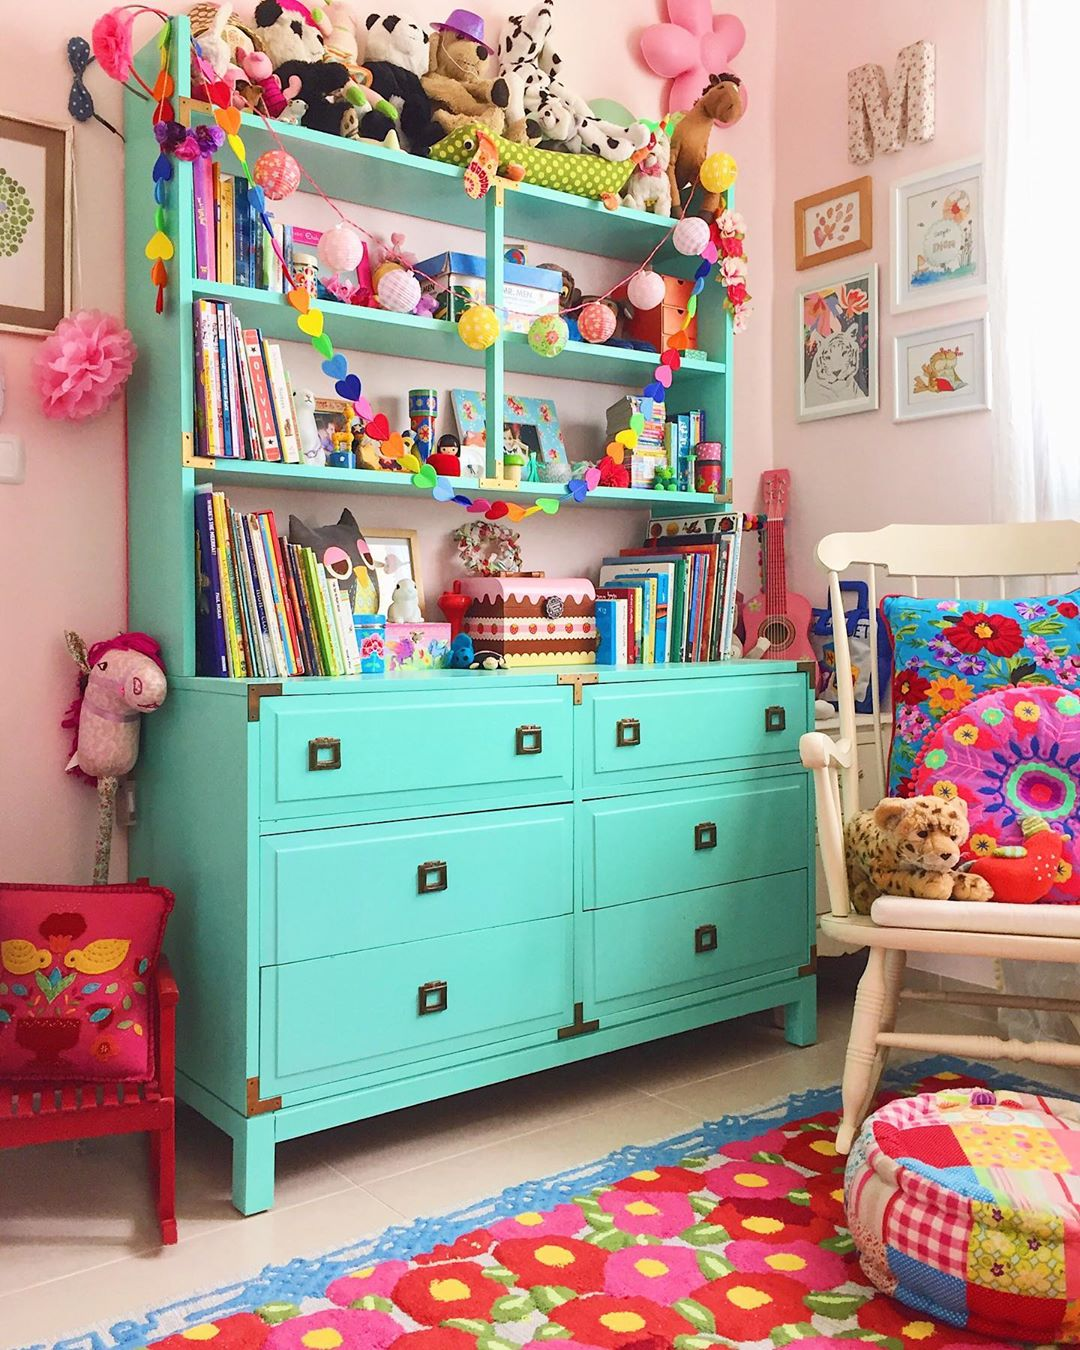 10 Easy Hacks to Organise the Chaos in Kid's Room